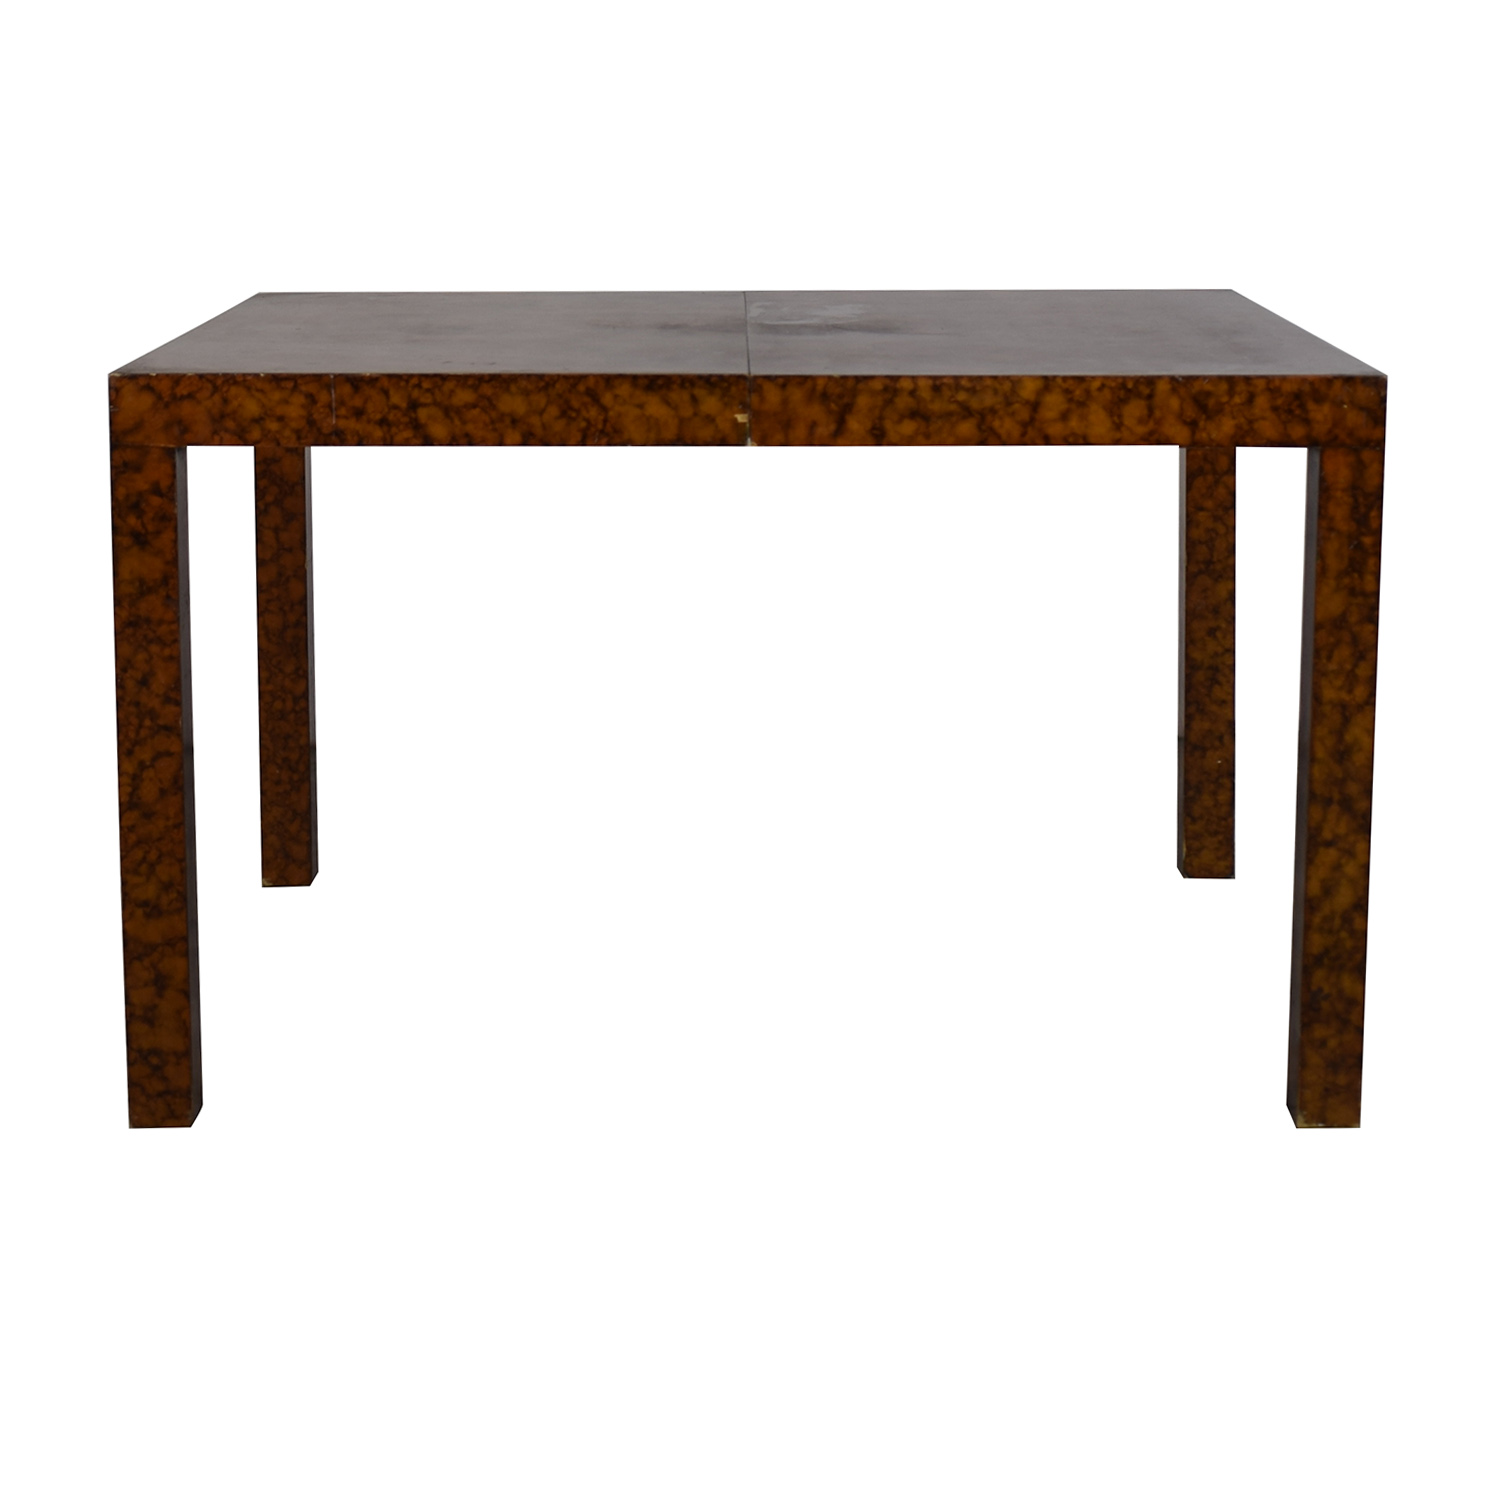 shop Directional Furniture Milo Baughman Burl Parsons Dining Table Directional Furniture Dinner Tables